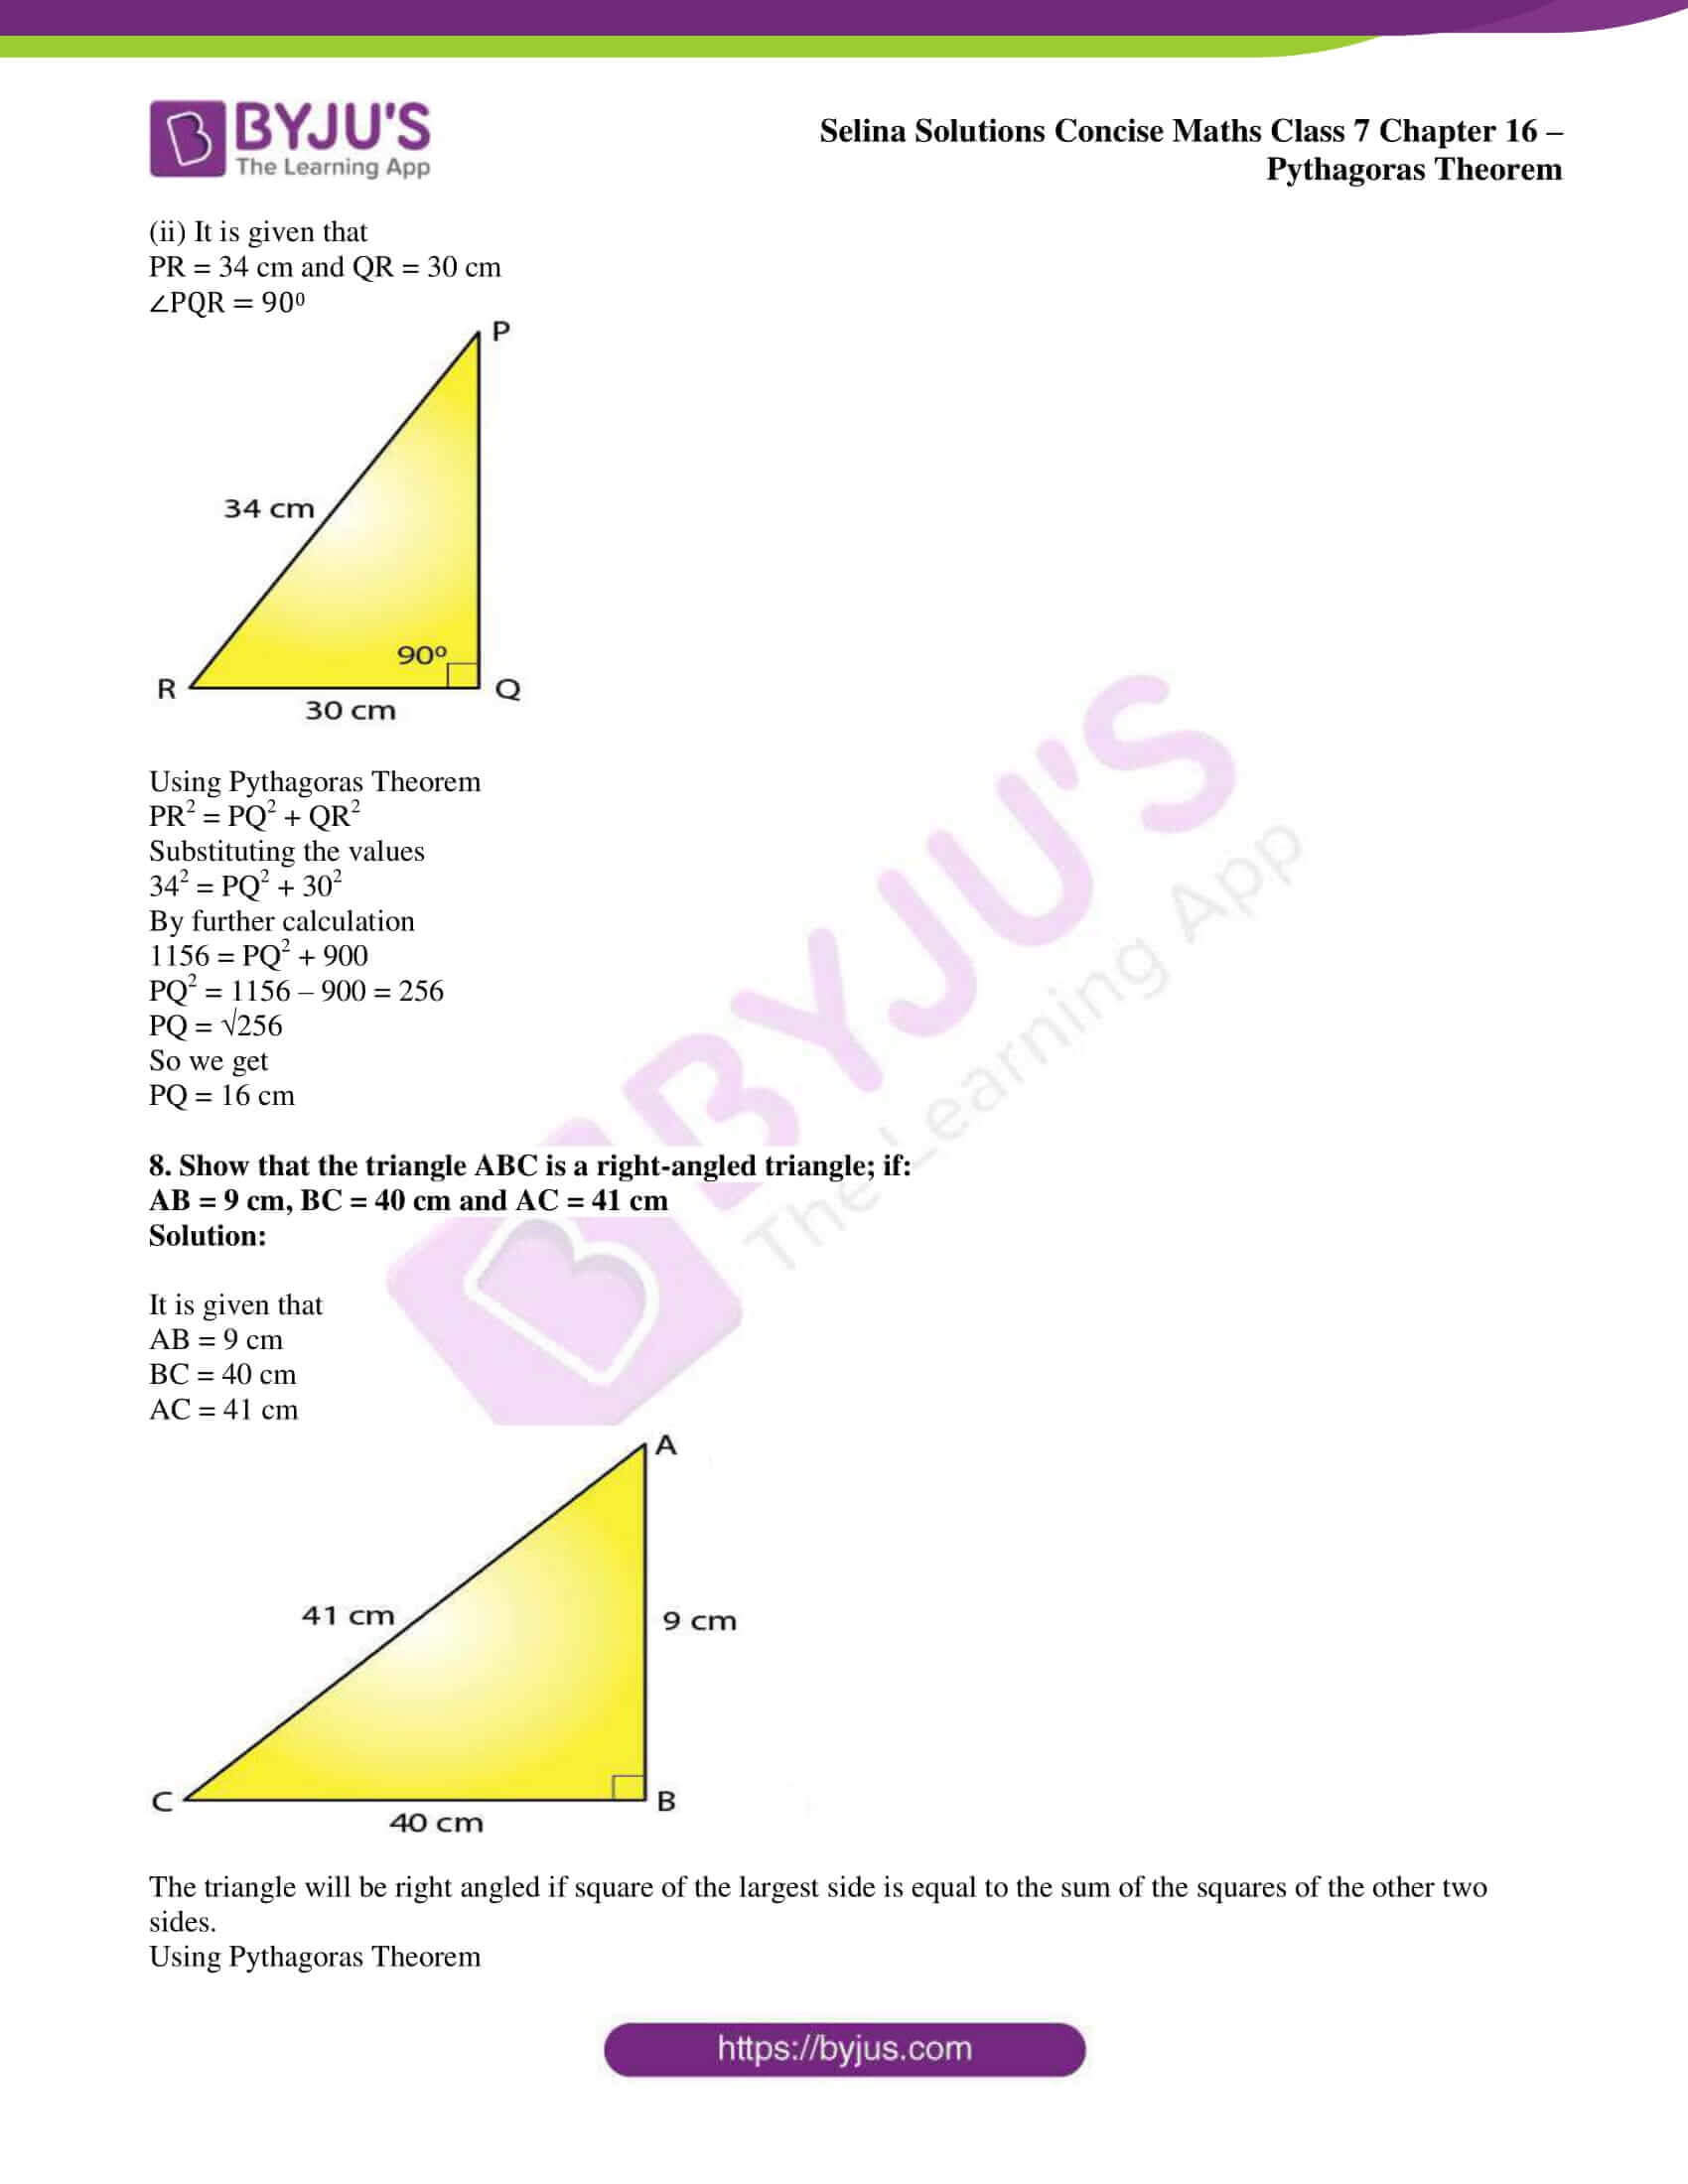 selina sol concise maths class 7 chapter 16 06